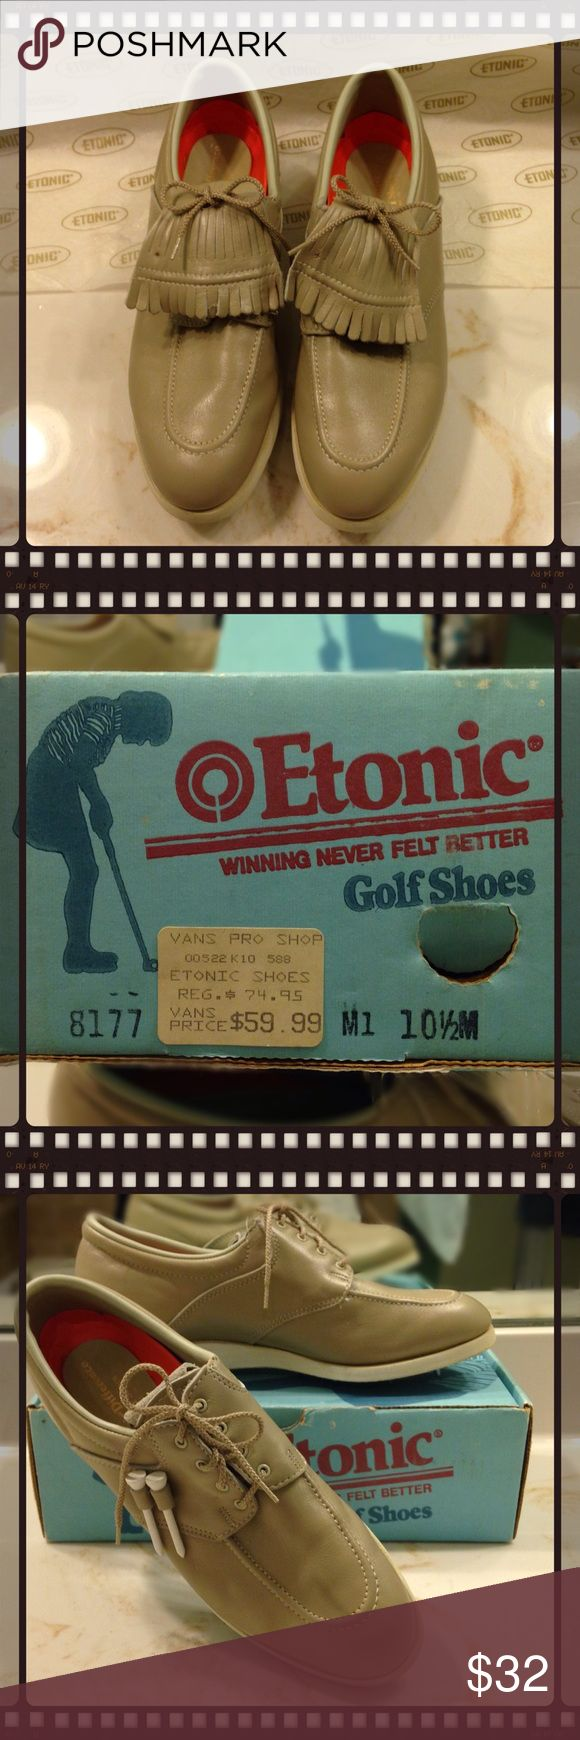 MENS GOLF SHOES by ETONIC  LEATHER KILTIES LACEUPS ⛳️💚ETONIC LEATHER GOLF SHOES 💚⛳️  NWOT, VINTAGE  Style: LACE-UP FRINGED KILTIES, Metal Spikes. Color: Tan. Size: MENS 10 1/2M. ETONIC Shoes Oxfords & Derbys